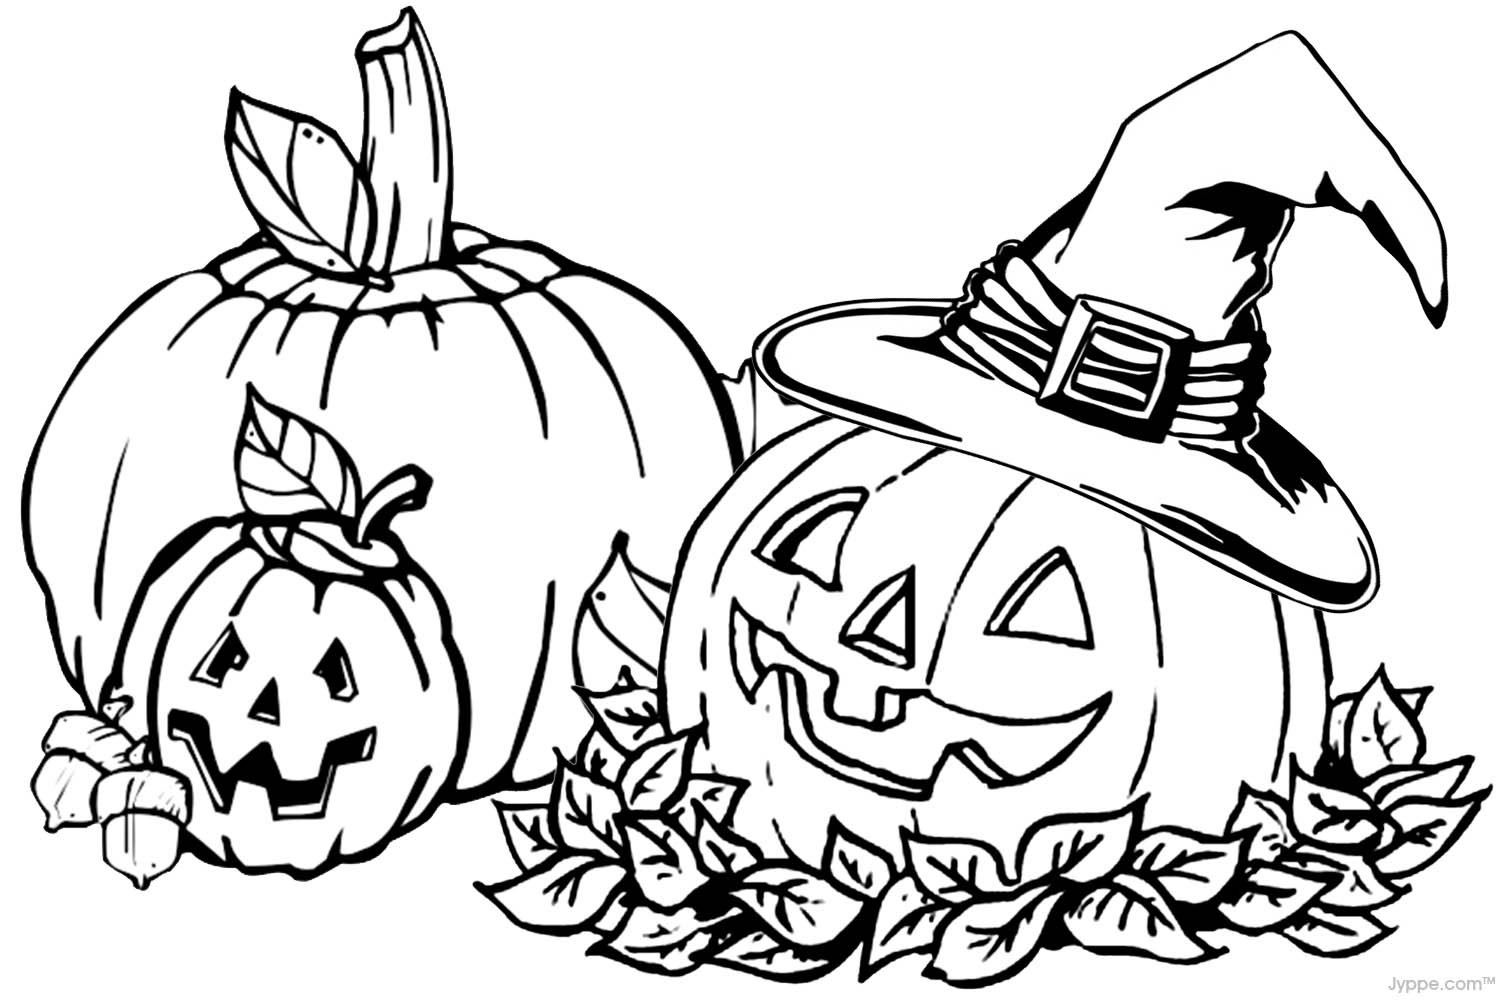 Pumpkin Coloring Pages Pumpkin Coloring Pages Pumpkin Coloring